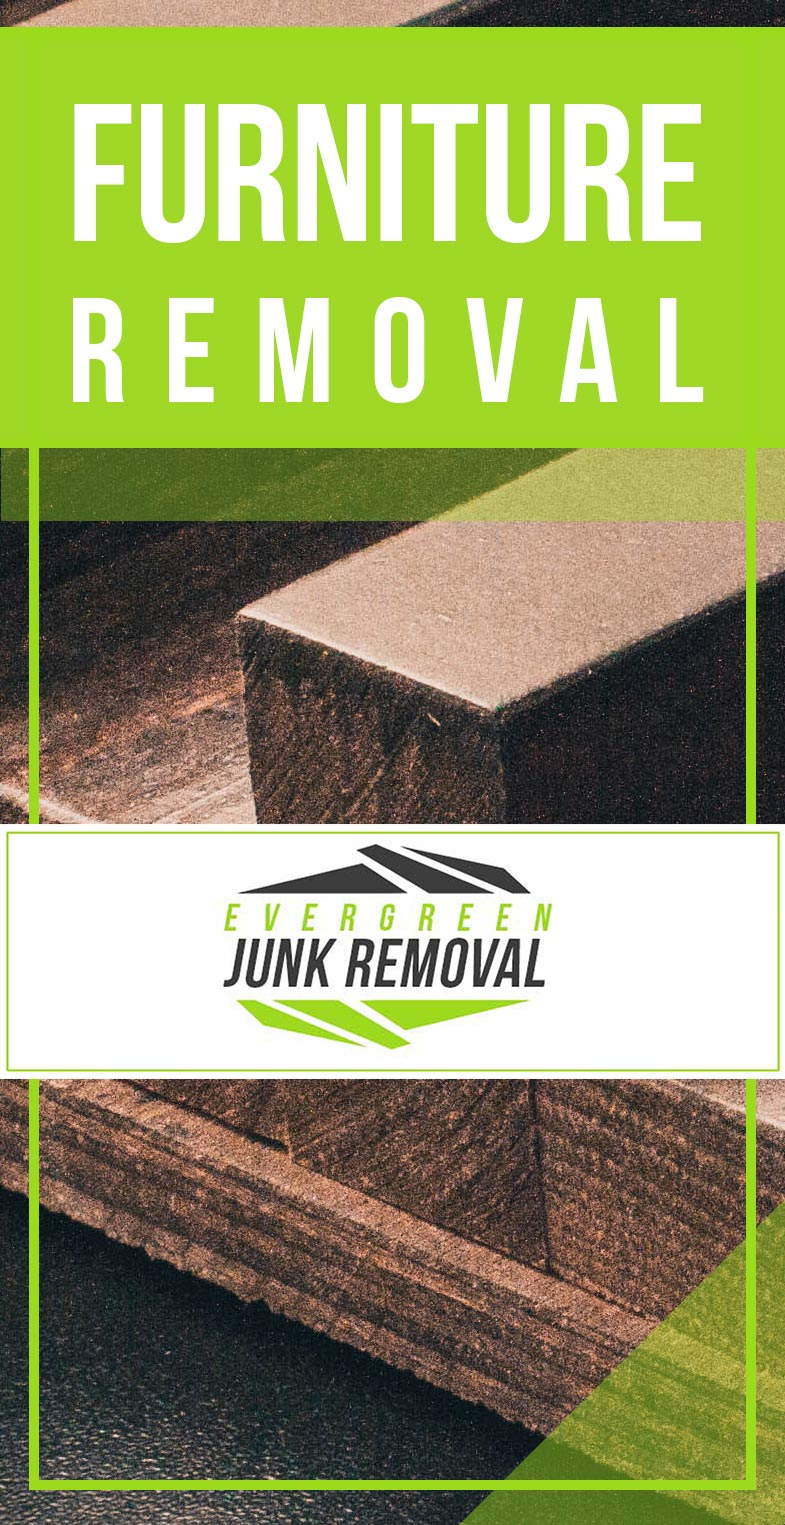 Bothell Furniture Removal